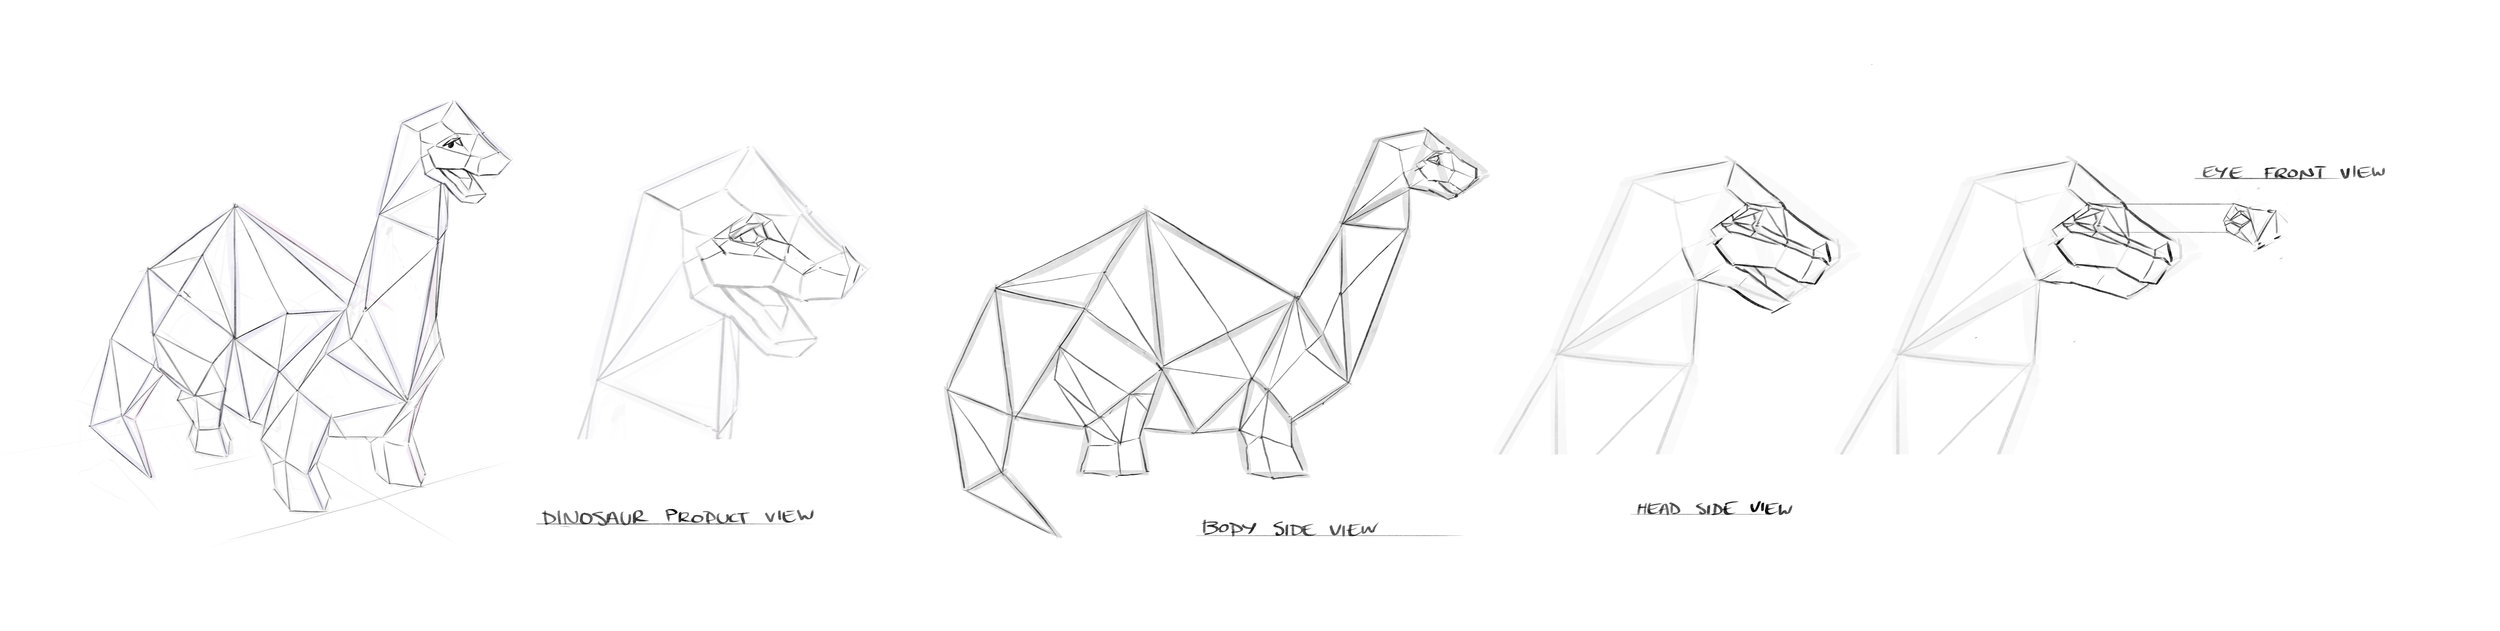 Development of the paper dino.